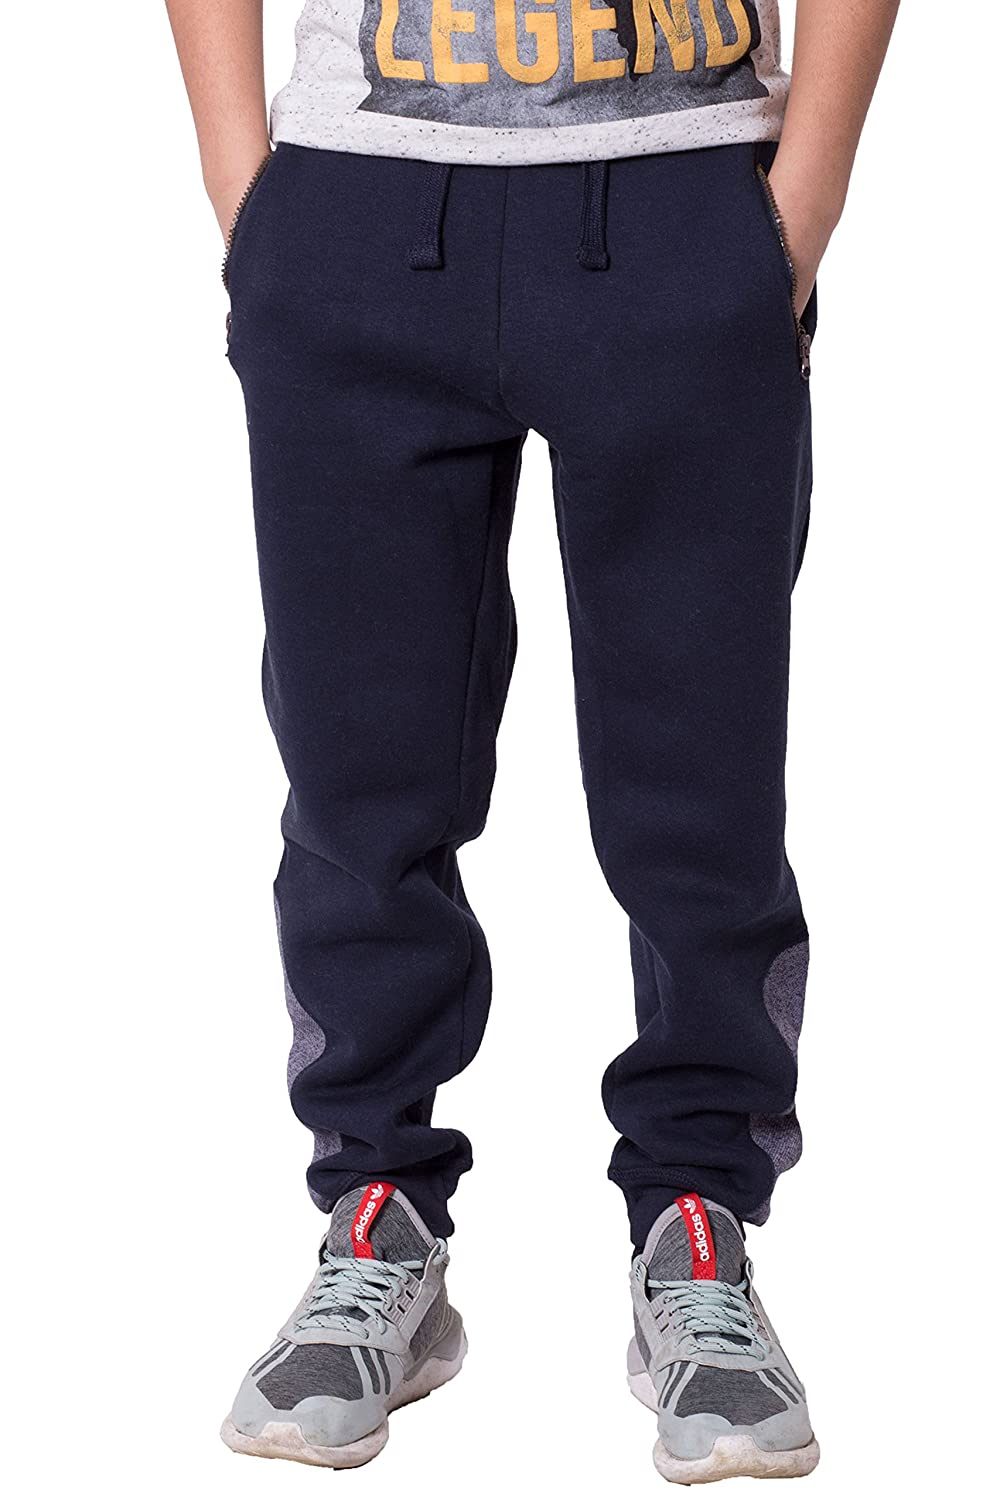 Noroze Boys Kids Ankle Contrast Panel Fleece Trousers Jogging Bottoms